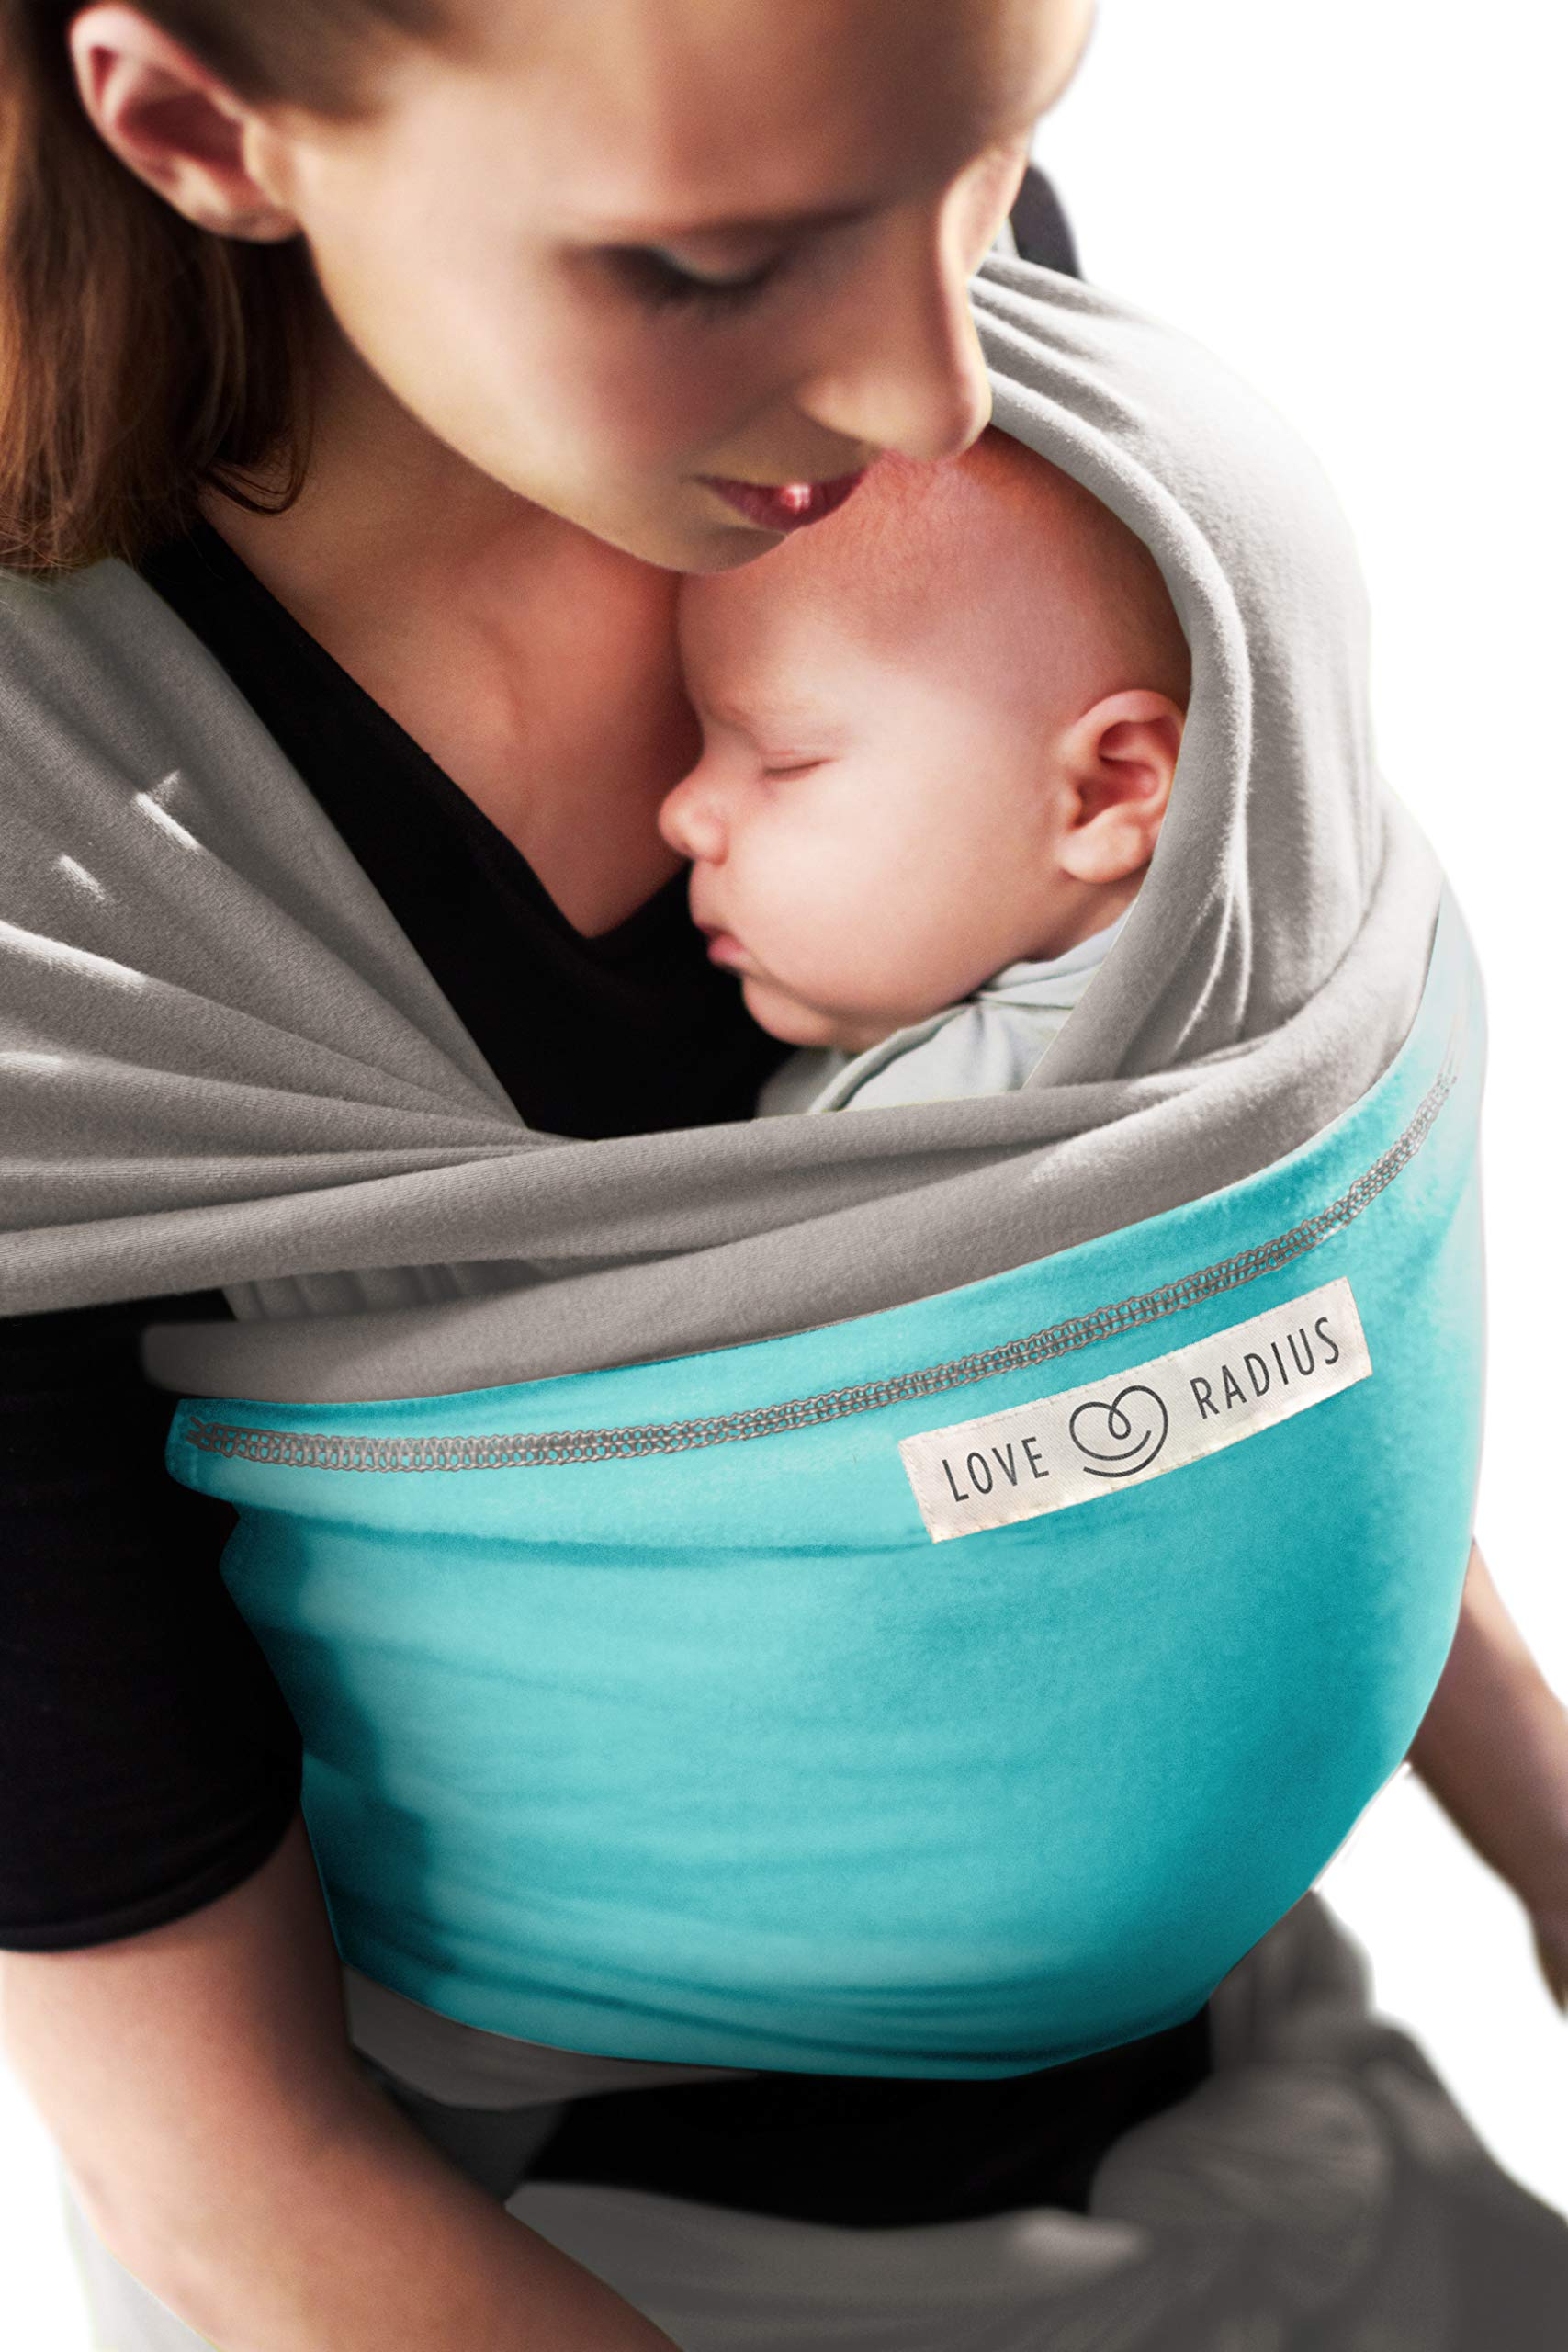 Je Porte Mon Bébé L'Originale Baby Sling Je Porte Mon Bébé High Quality Elastic Baby Carrier Dense, elastic and breathable material Great support, fits your baby's body like a second skin. 26